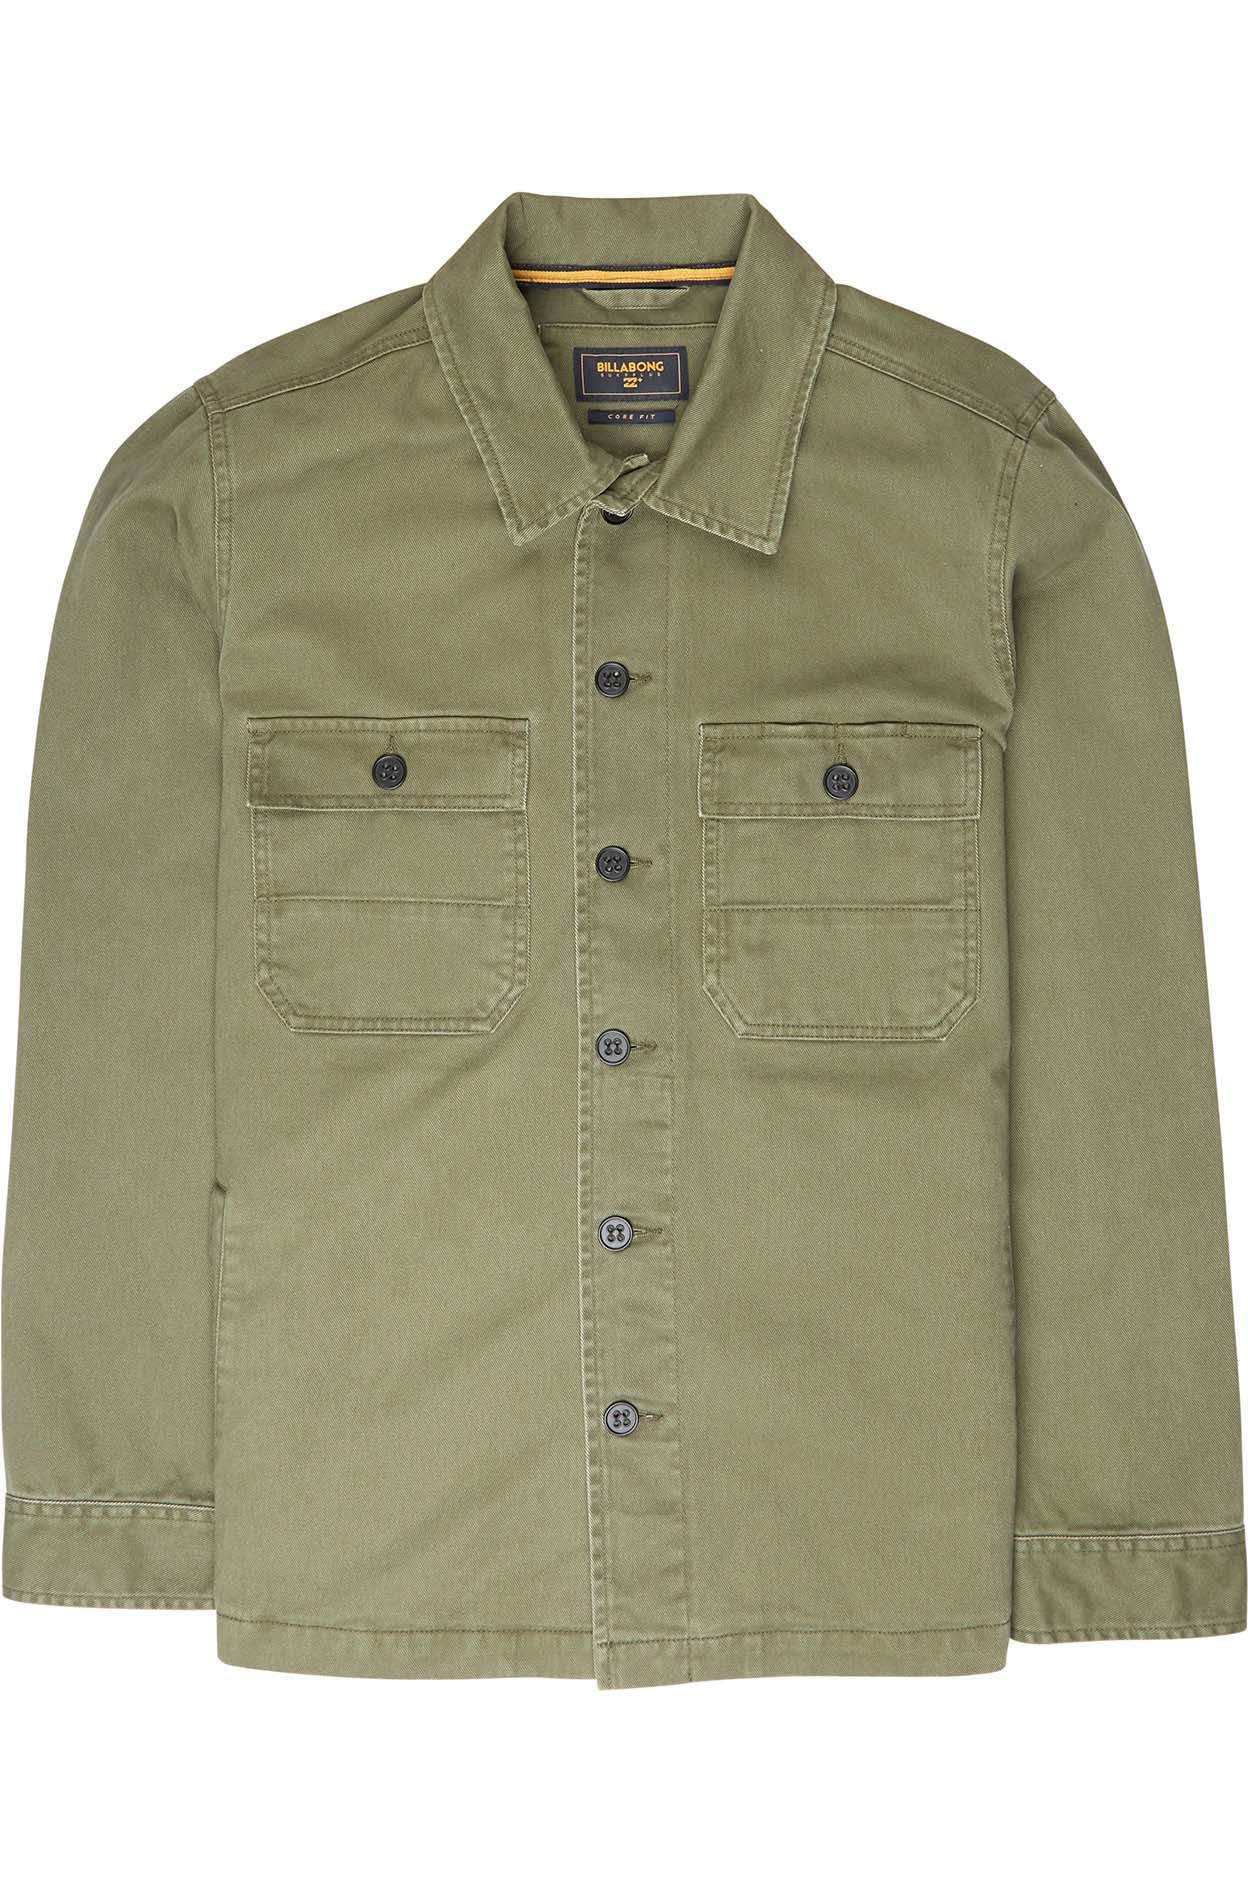 Camisa Billabong COLLINS Military 5a13d49a1e2